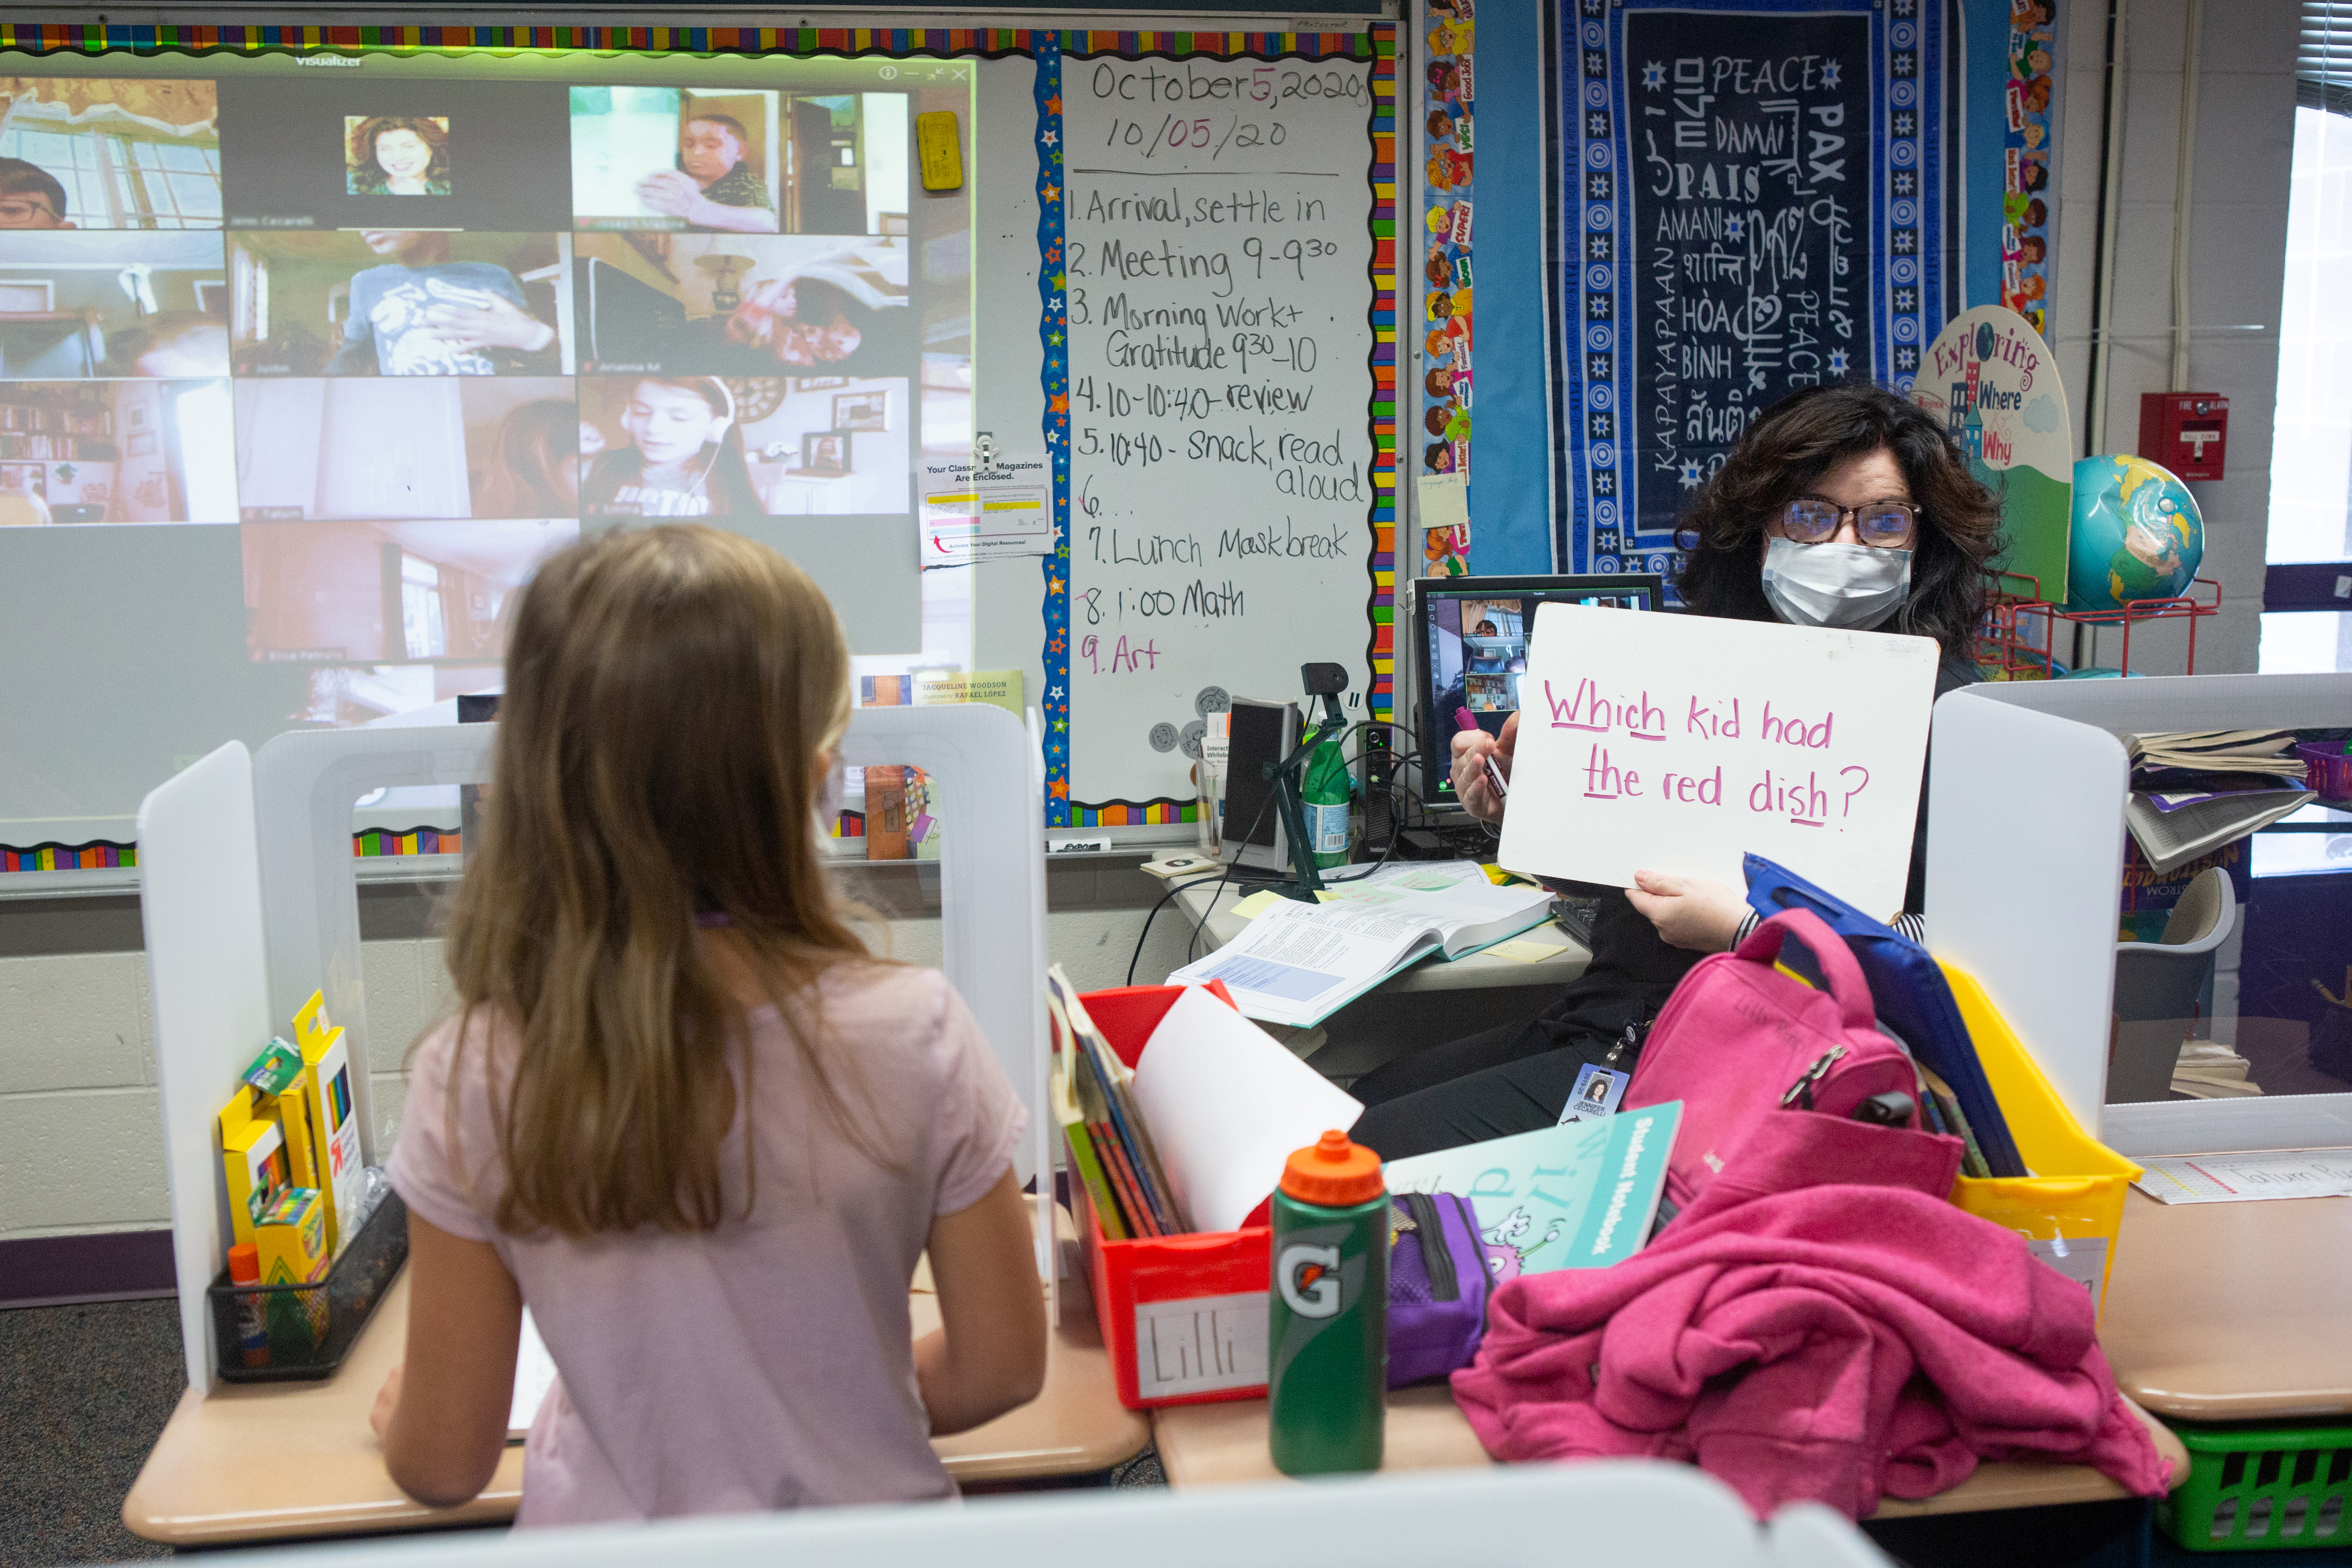 """Second grade teacher Mrs. Cecarelli, wearing a mask, holds up a placard with the words, """"Which kid had the red dish"""" with the digraphs Wh, ch, th and sh underlined.  A girl in a pink top stands in the foreground in a classroom, while a board with a projection of students participating remotely is in the background, at Wesley Elementary School in Middletown, CT, October 5, 2020."""